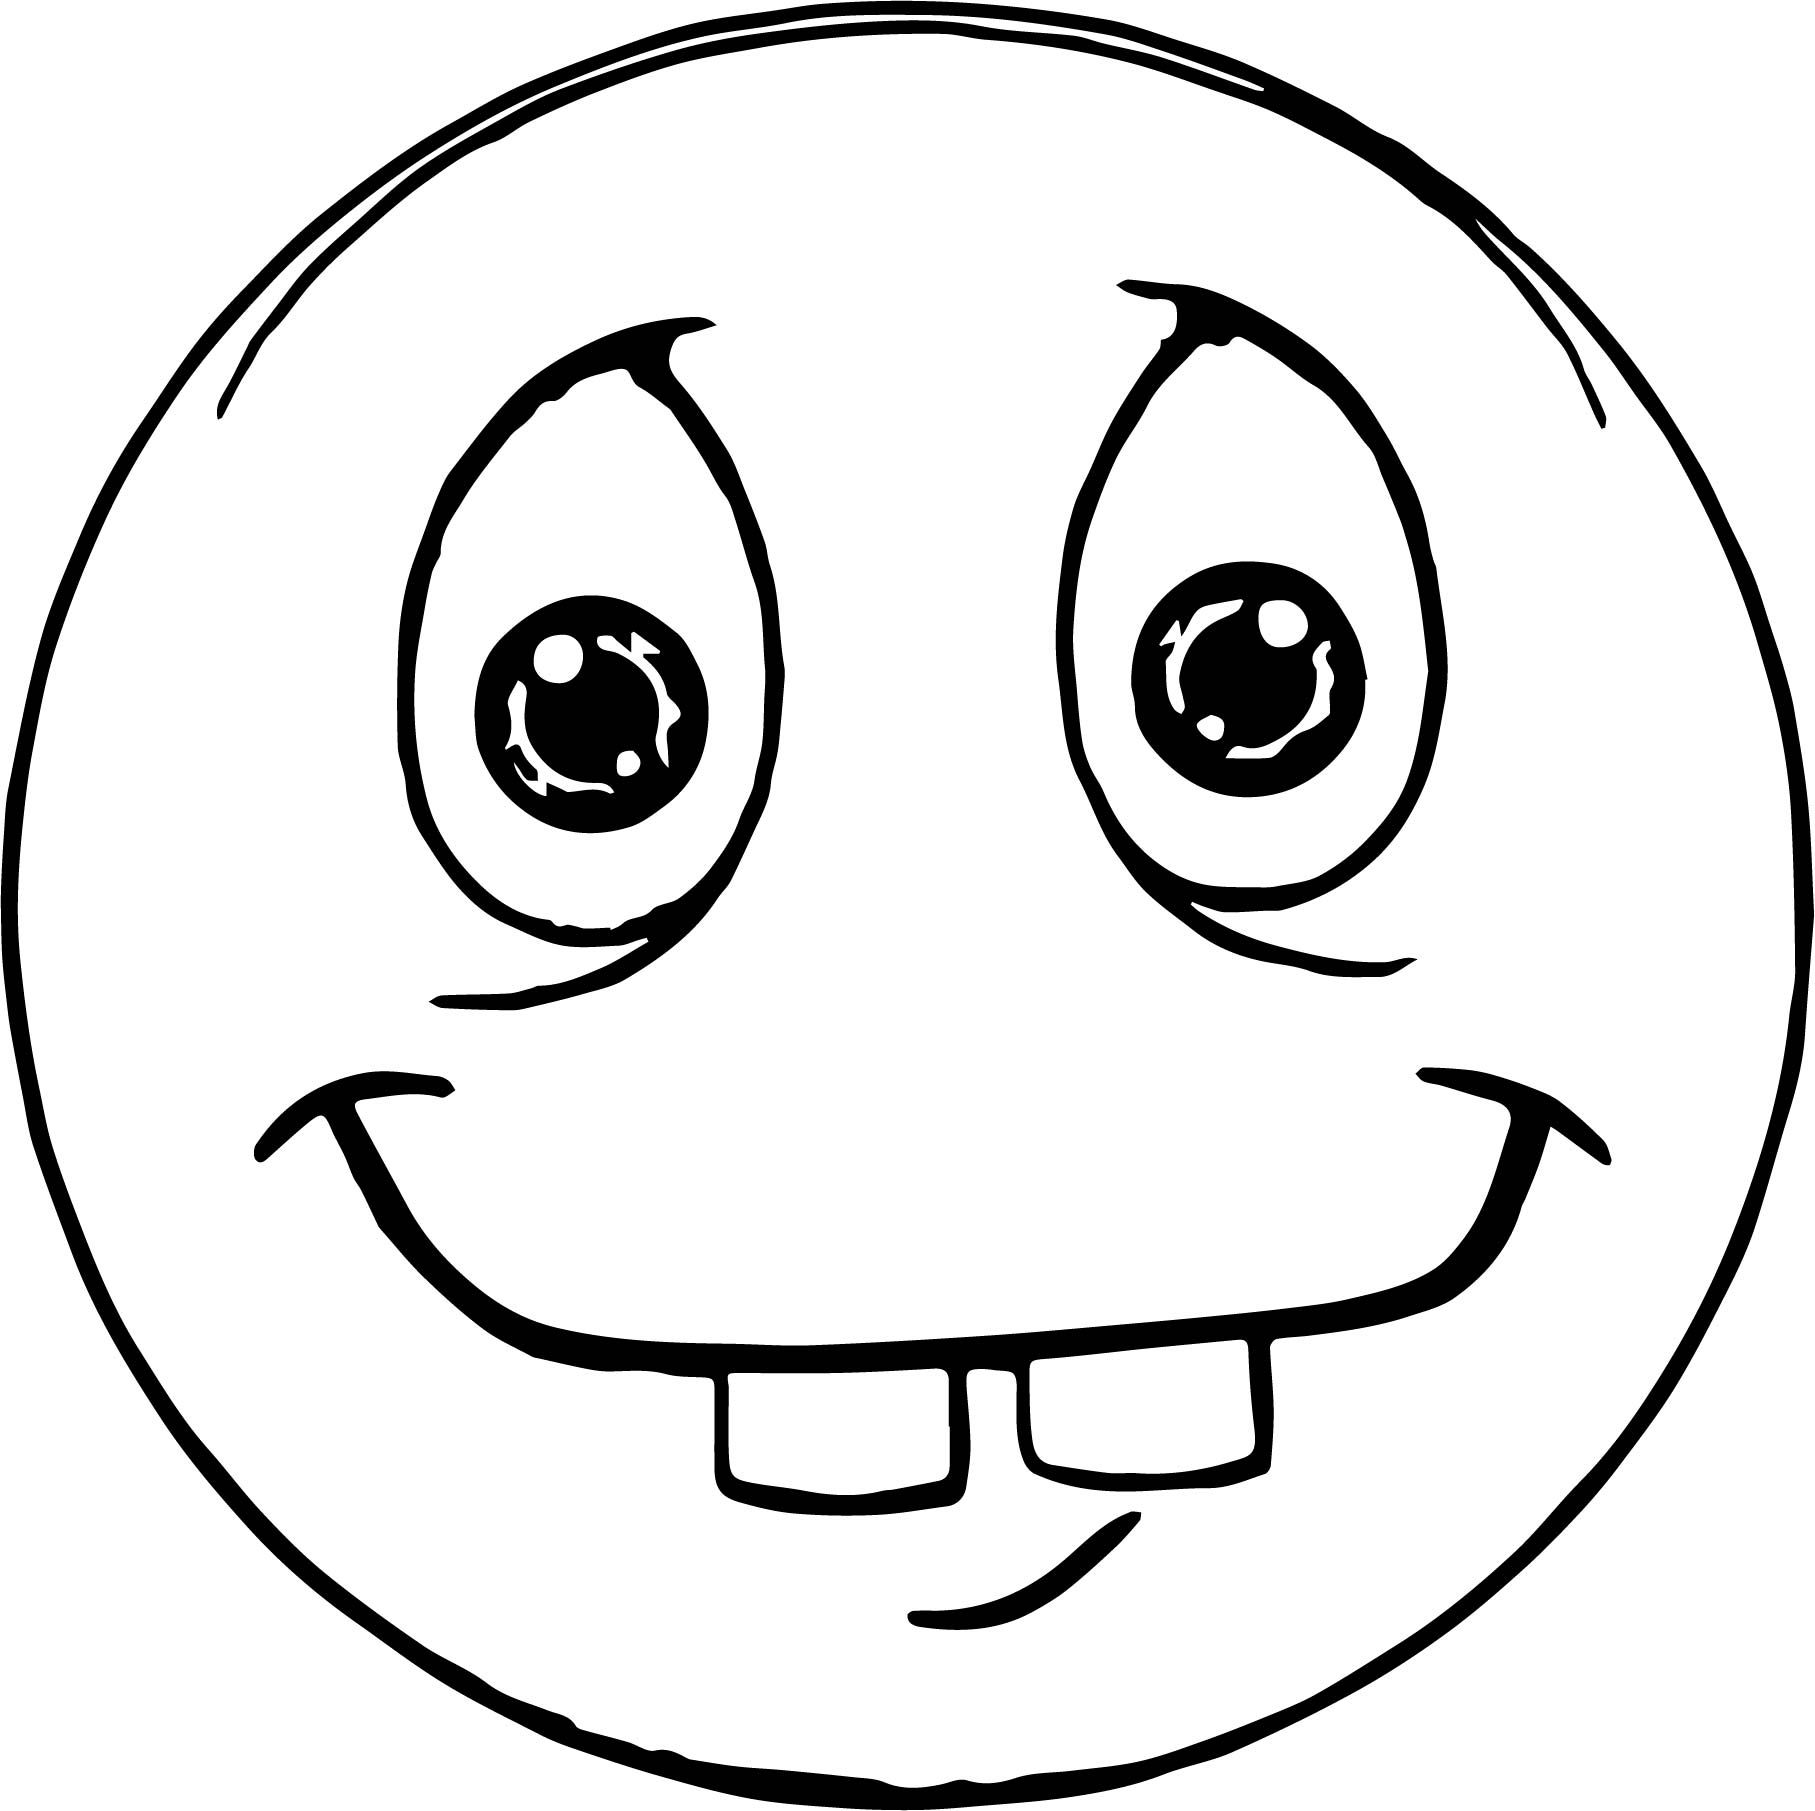 awesome Two Tooth Face Emoticon Coloring Page | Coloring ...